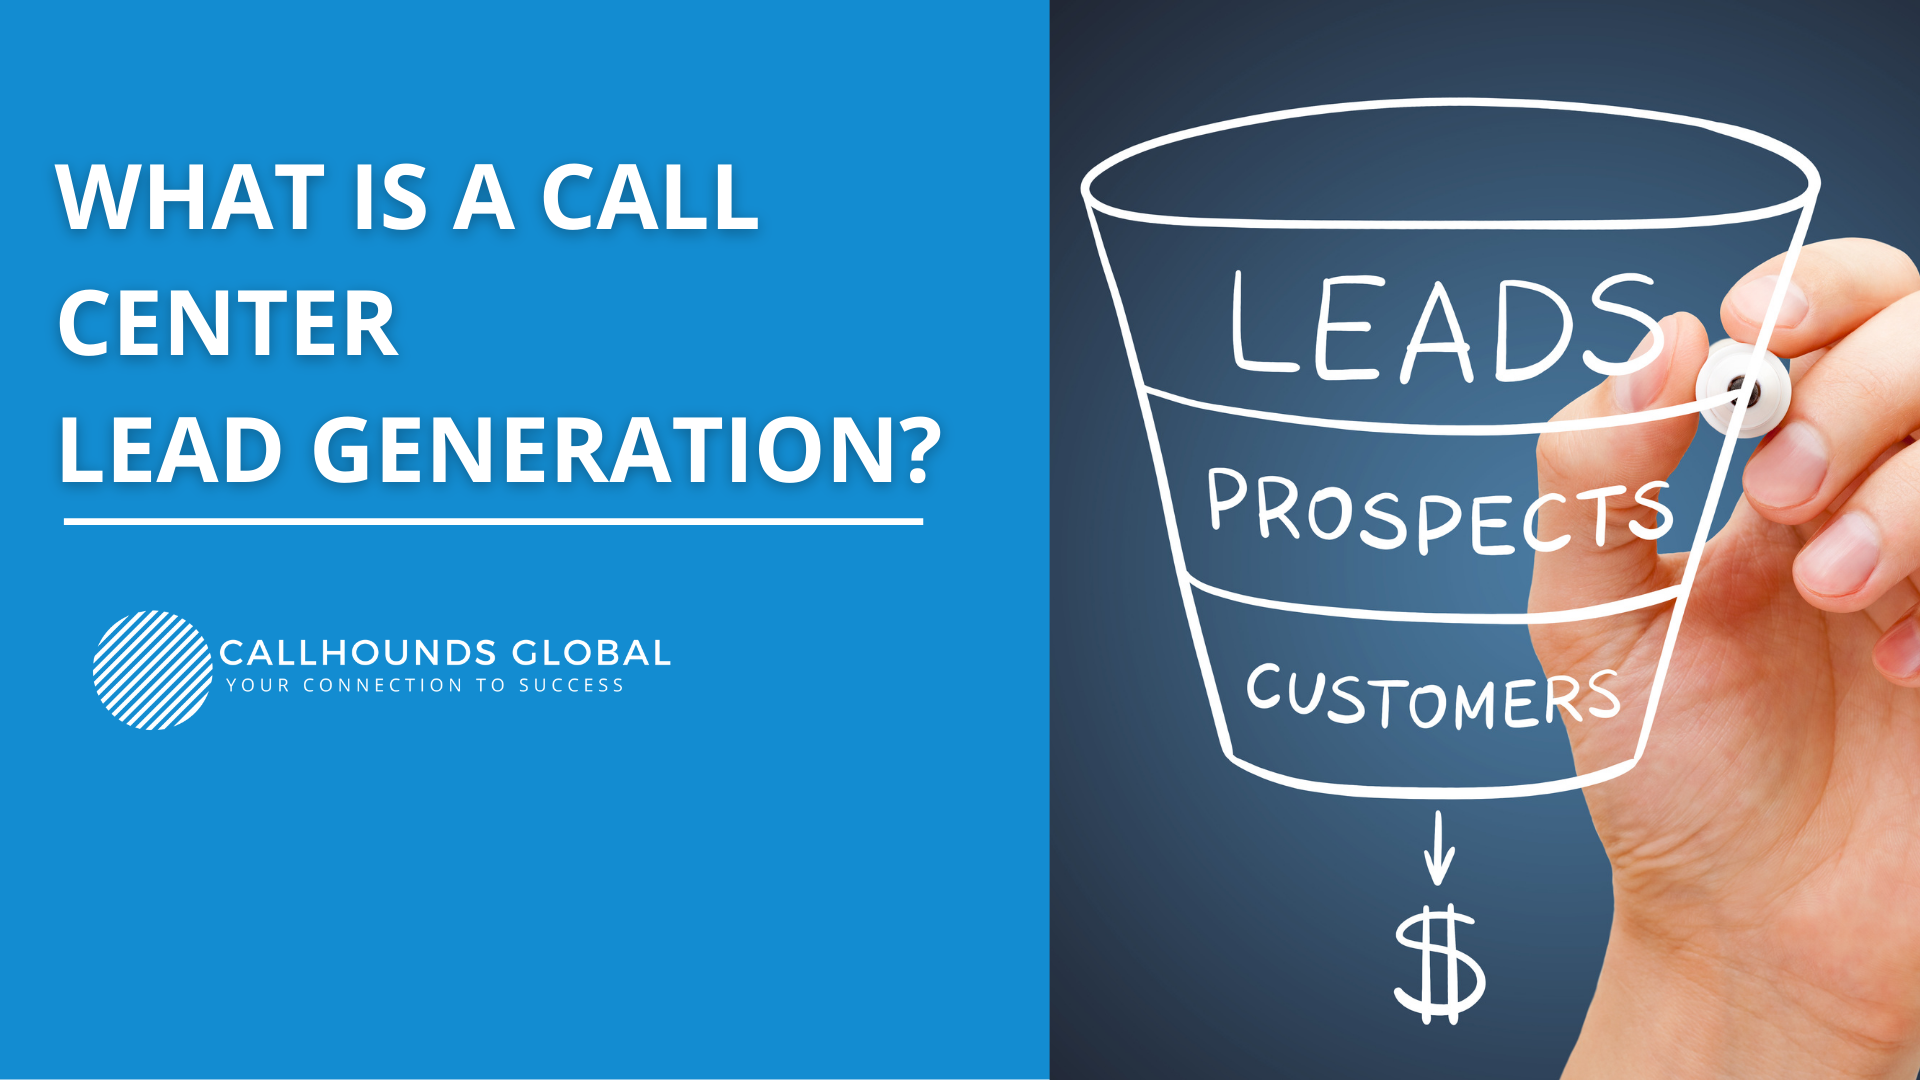 WHAT IS A CALL CENTER LEAD GENERATION